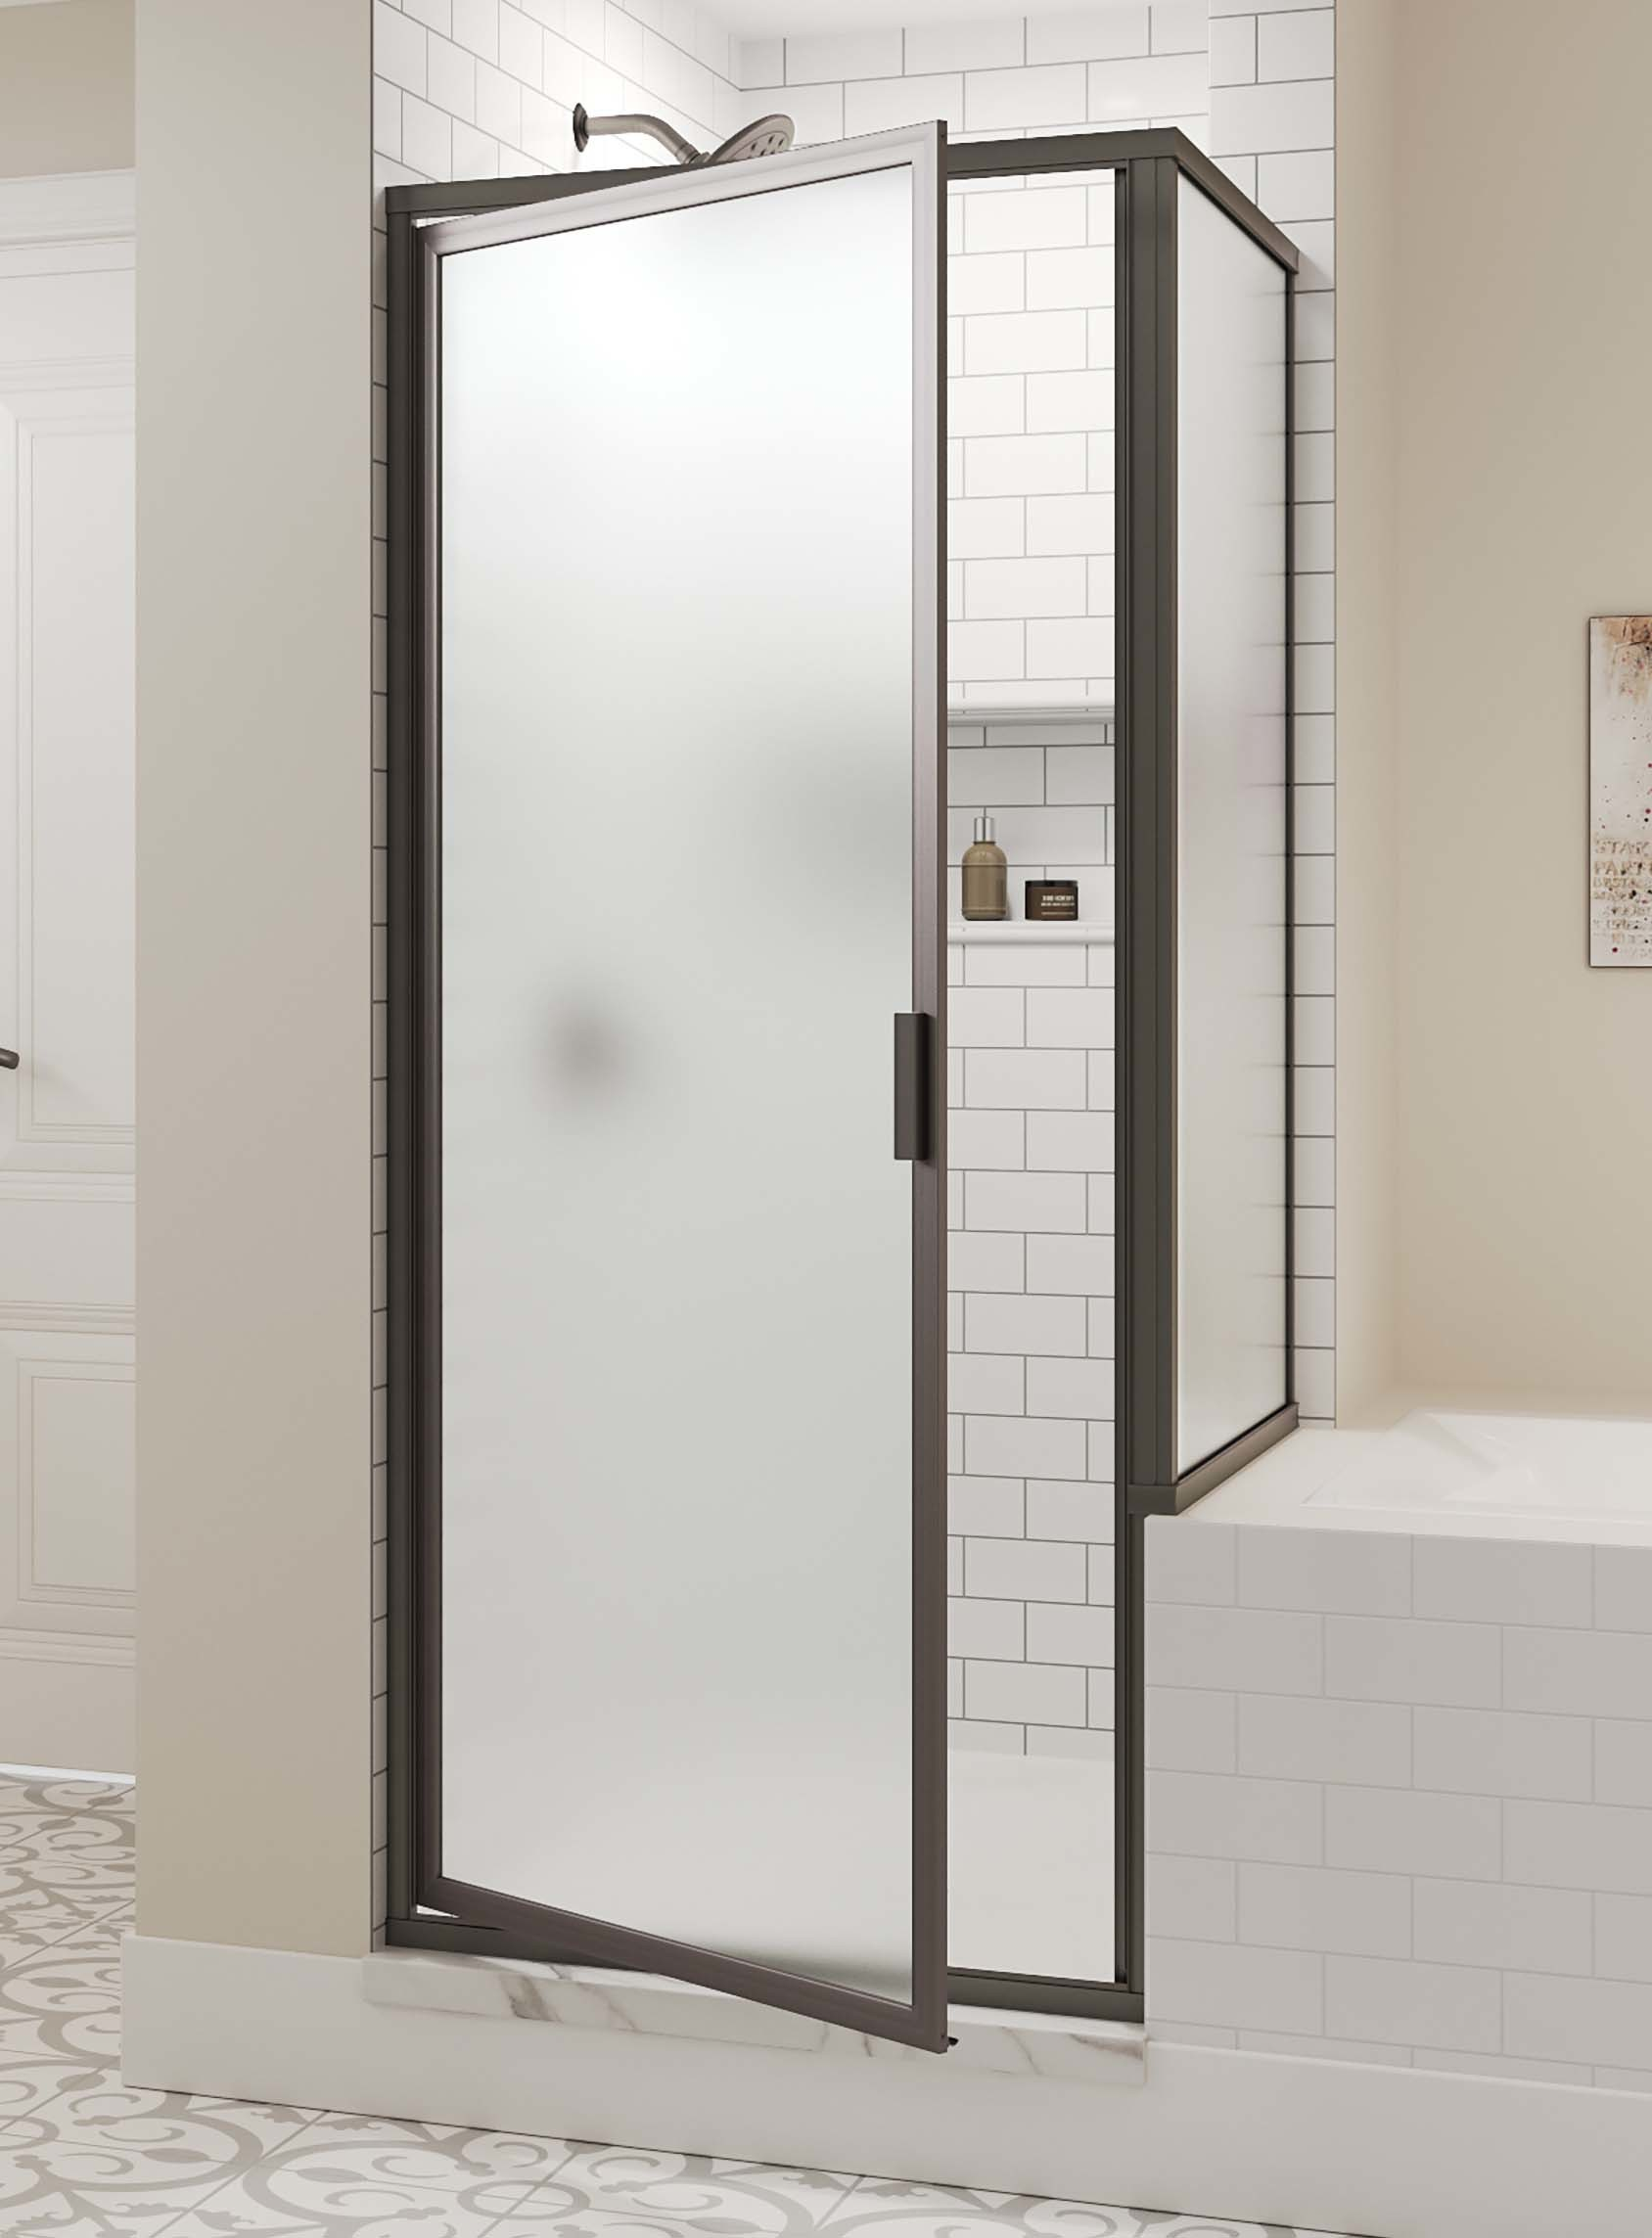 Deluxe Framed 3 16 Inch Glass Swing Door Return Basco Shower Doors